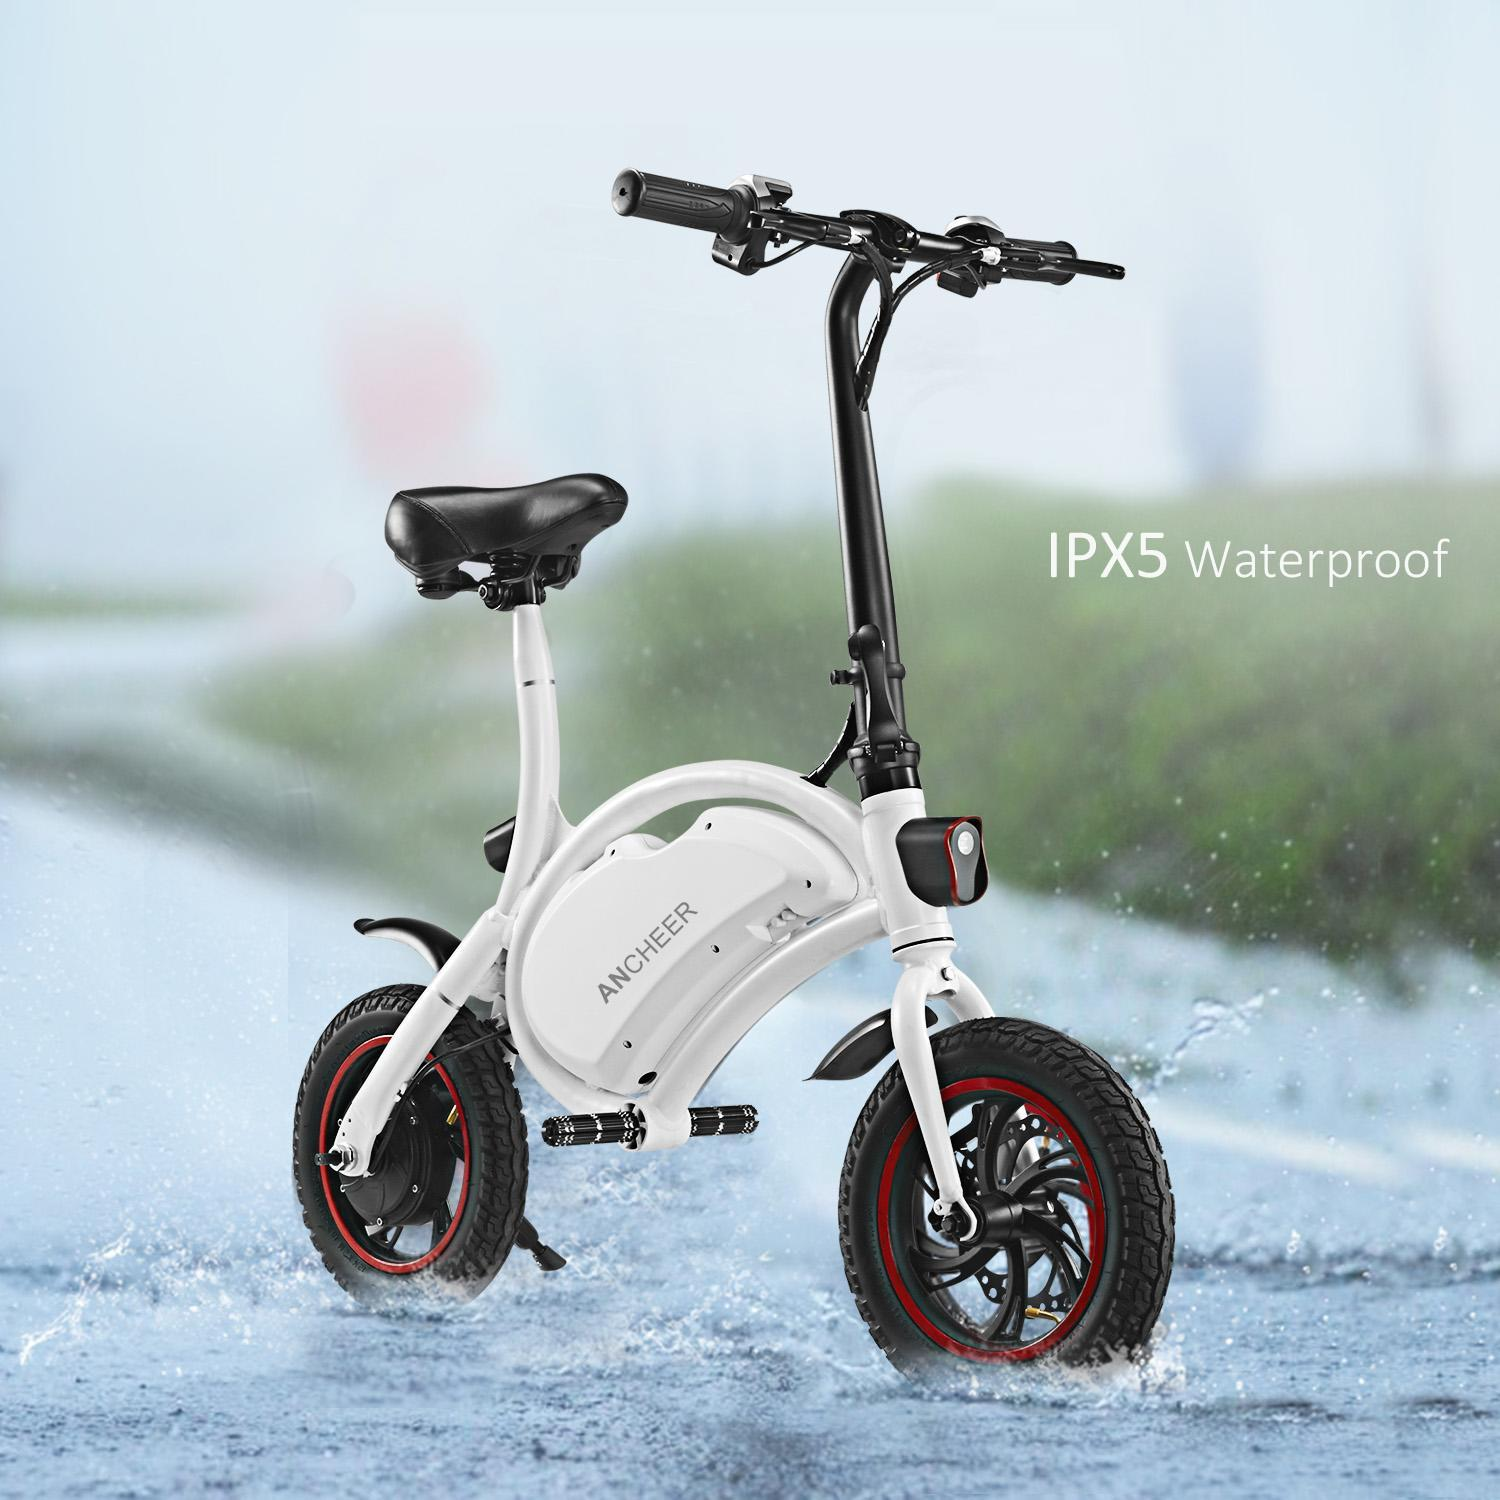 Mini Electric Bike Waterproof E-Bike Aluminum Bicycle Folding Bicycle, 36V, 20KM VAF